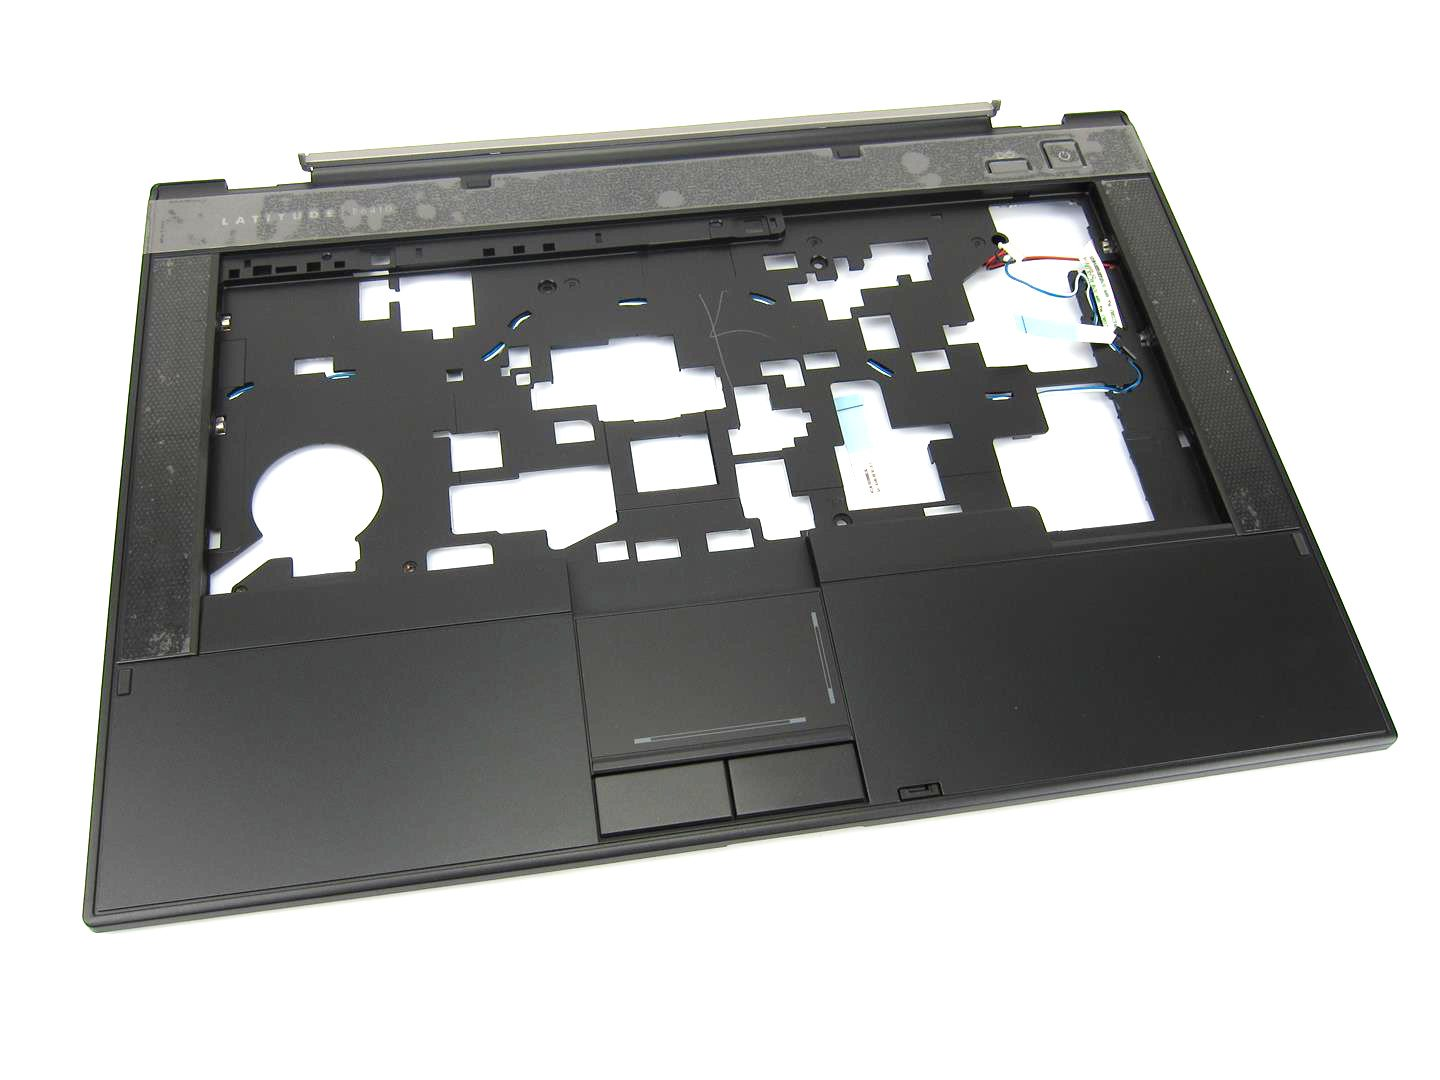 Genuine Dell Y42JK A09103 Latitude E6410 Black Palmrest With TouchPad Compatible Part Numbers: Y42JK 0Y42JK ASSY,PLMRST,W/O-CSC,UP,E6410